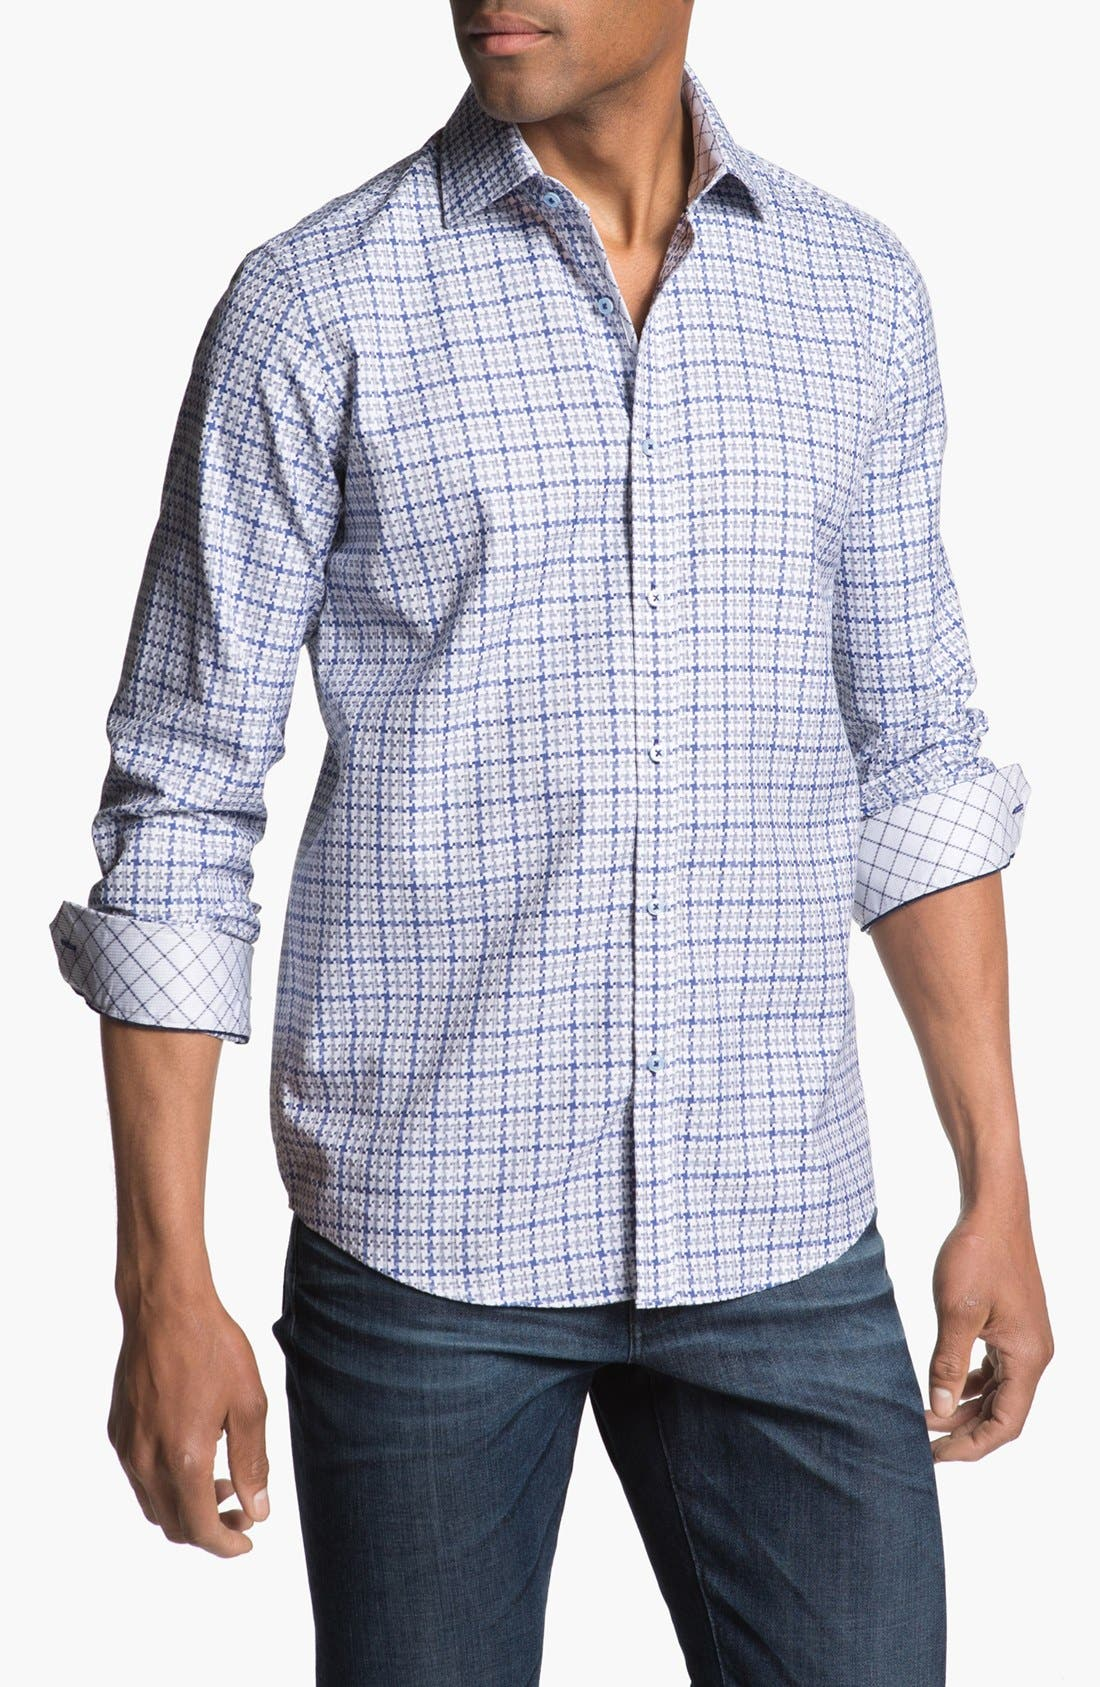 Main Image - Report Collection Regular Fit Sport Shirt